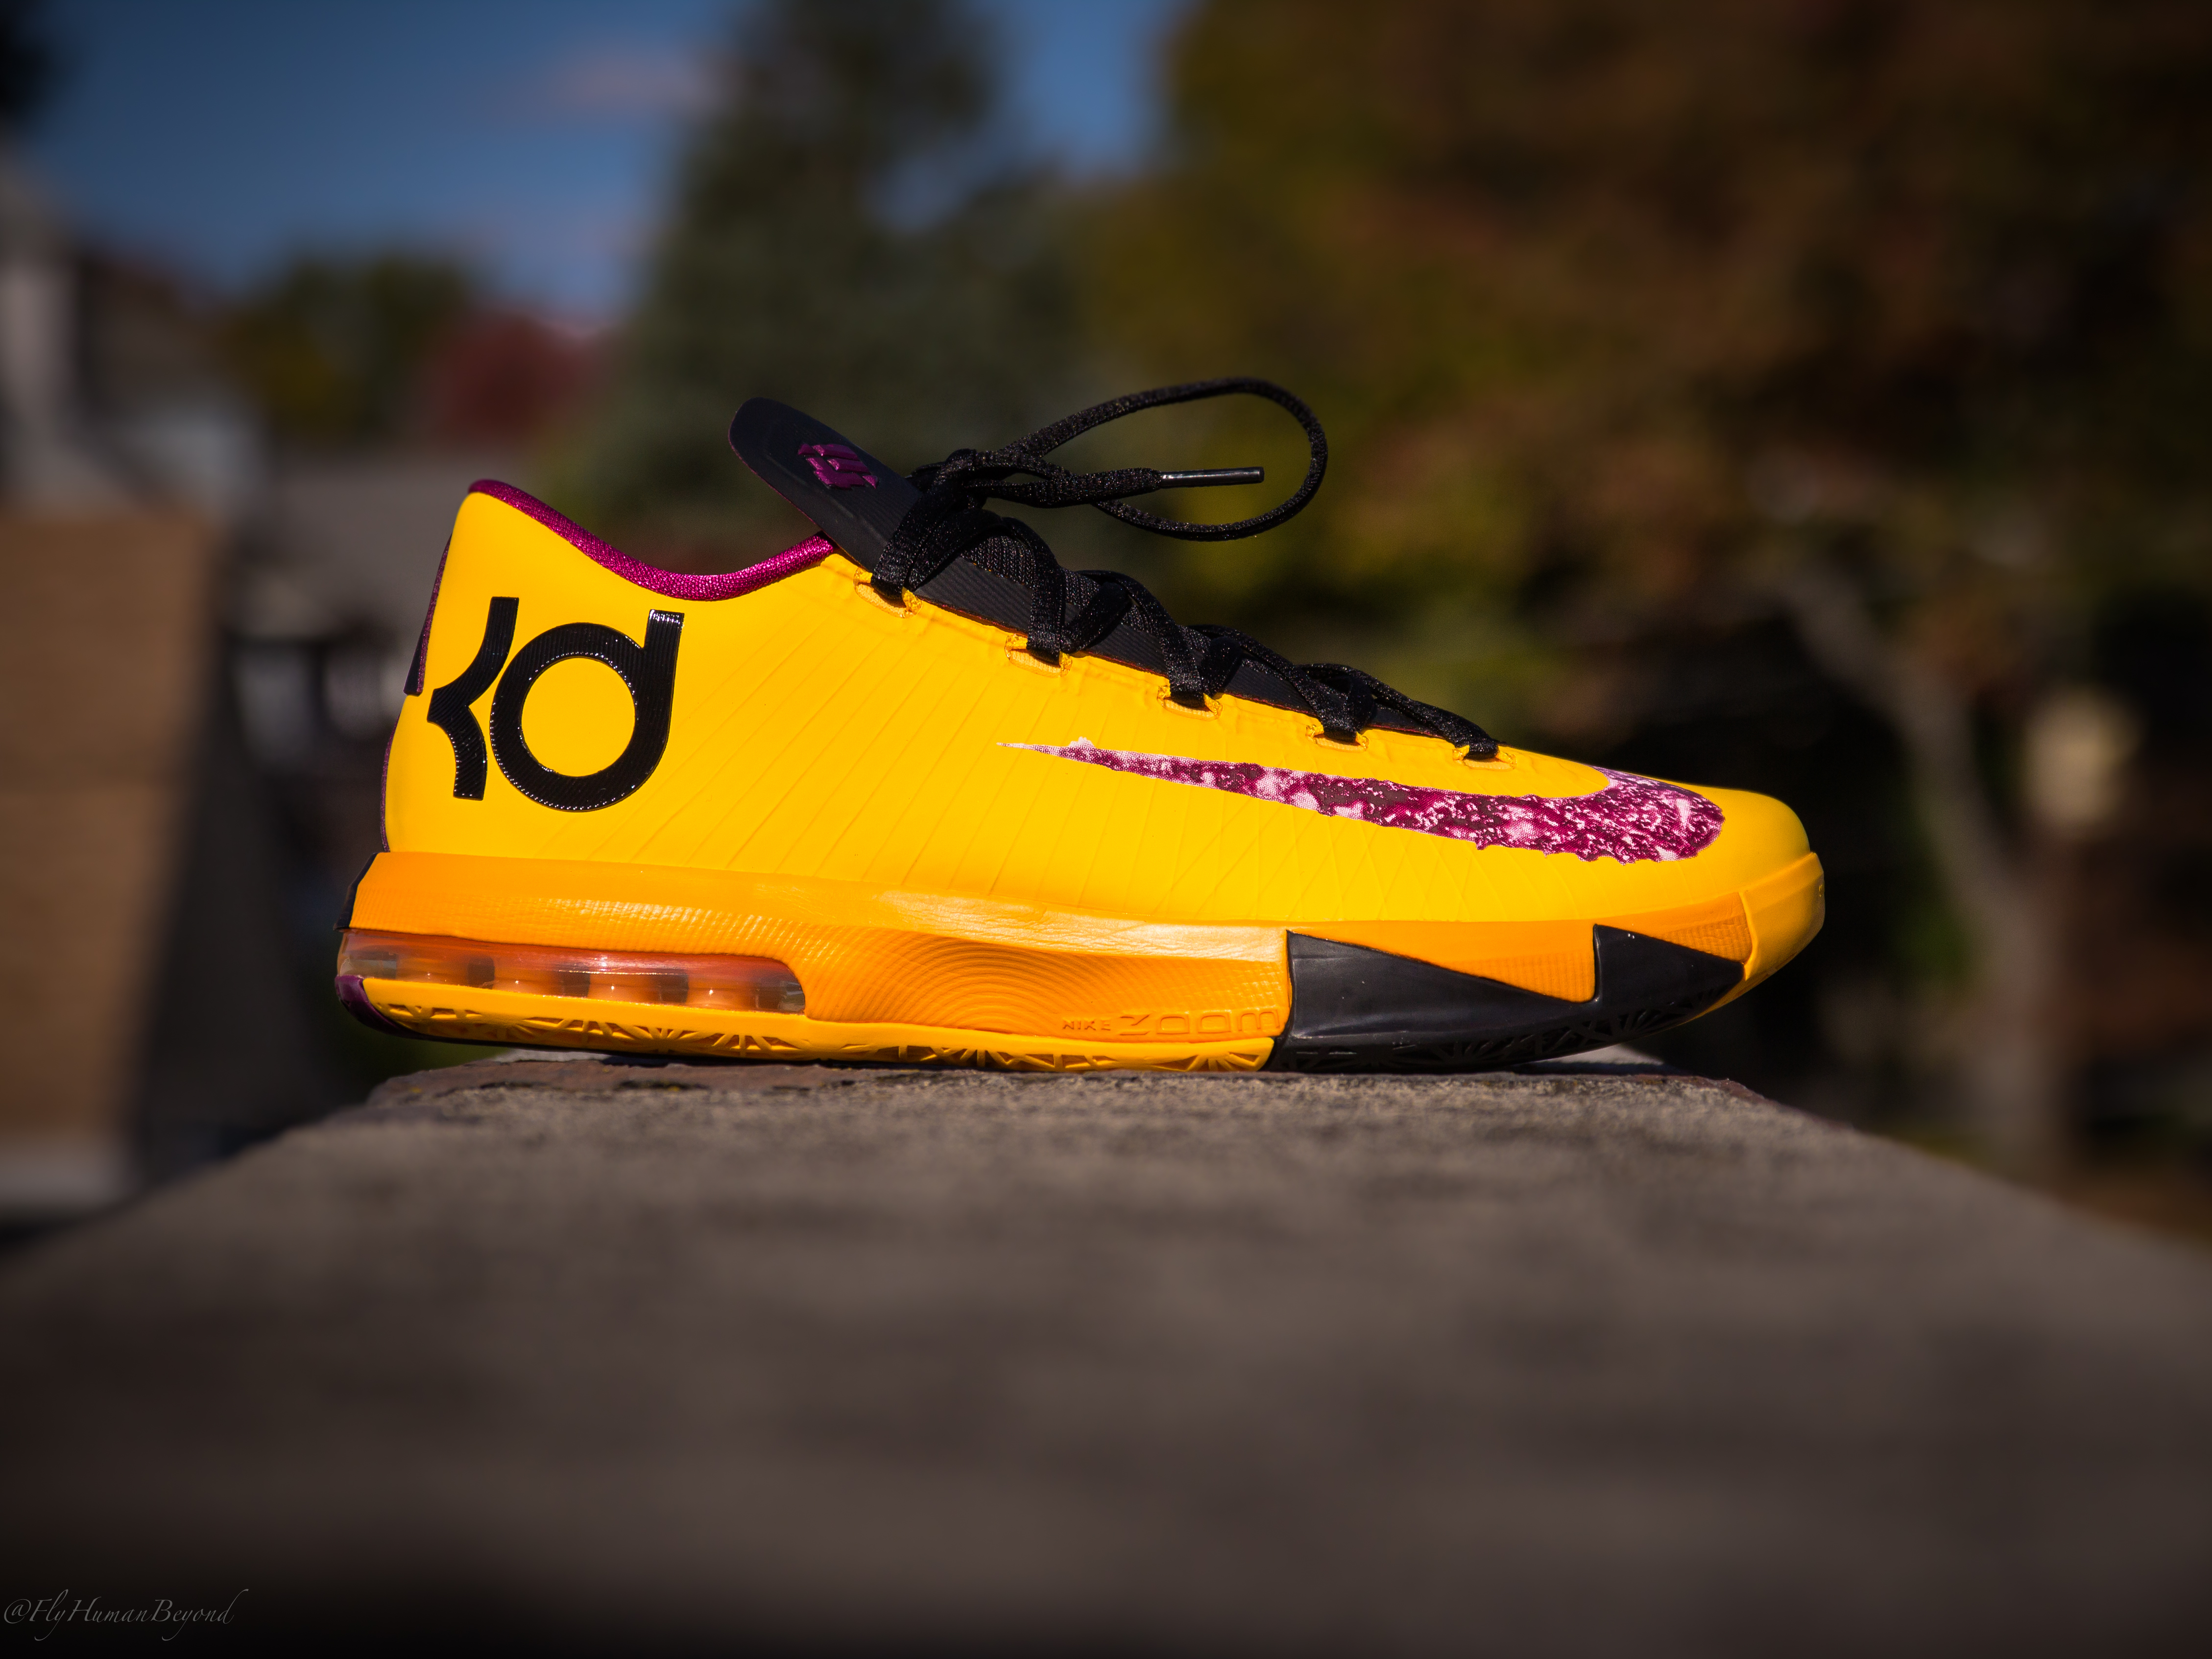 low cost a8e8c d555f ... snkrboot 7 facf3 e38be germany puma pnj kd vi am90 snkrboot 7 facf3  e38be  buy nike kd 7 aunt pearl gs kds breat cancer charity shoe he made  for his